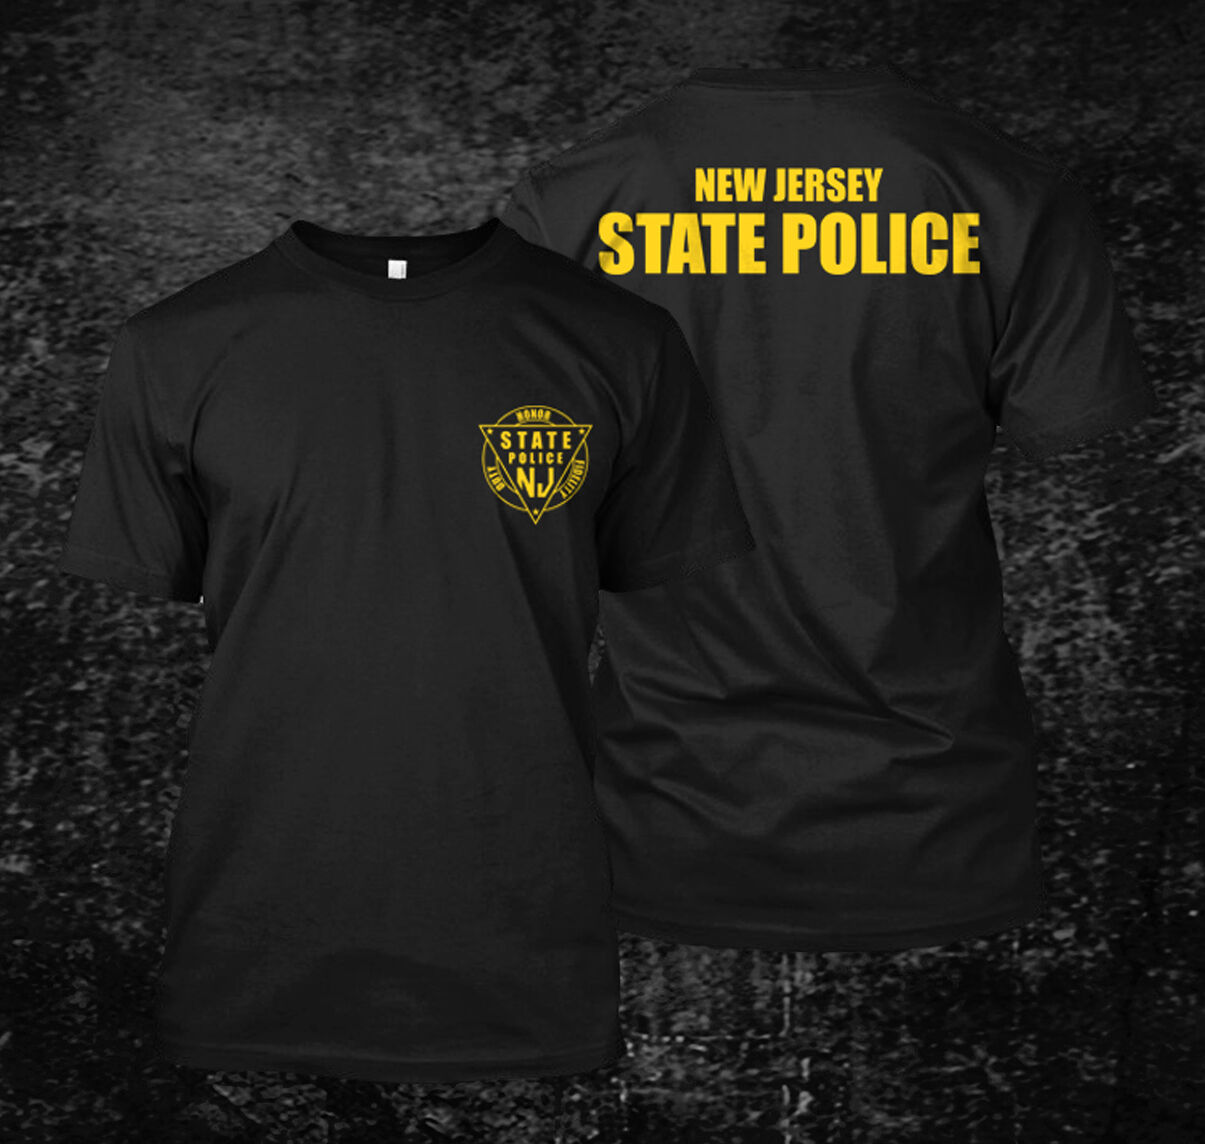 2019 Funny Jersey State Police - Custom T-Shirt Tee Double Side Unisex Tee